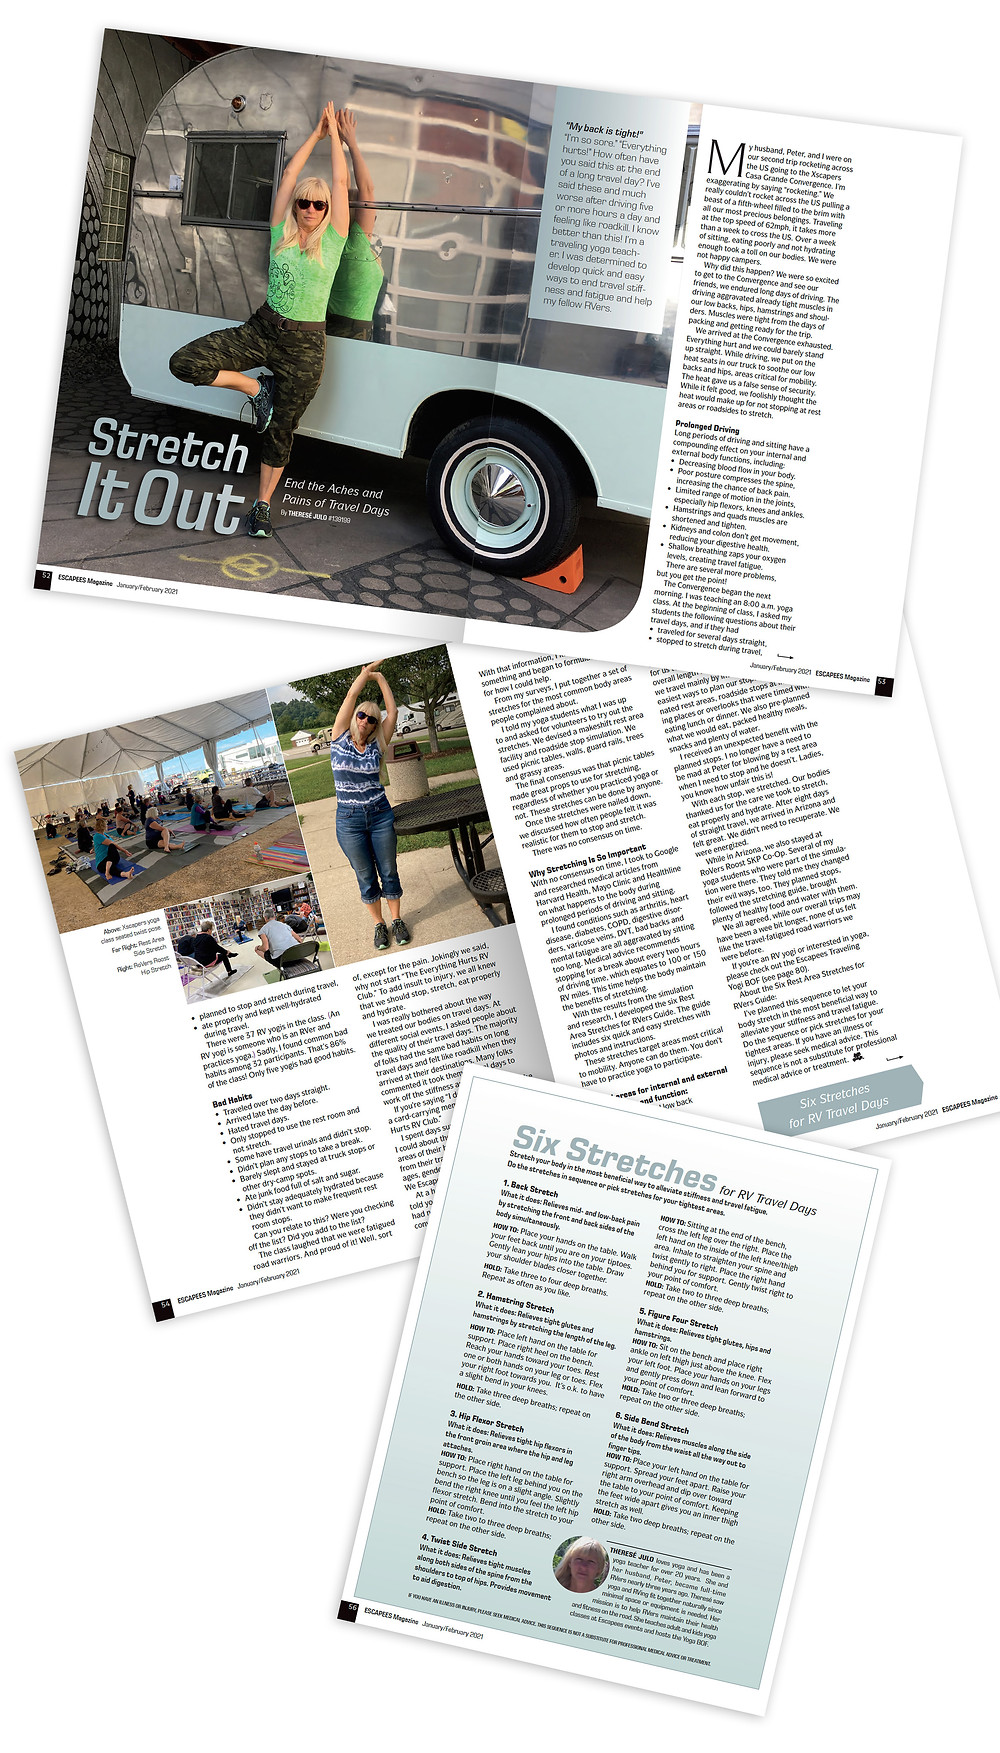 RV Yoga: Stretch It Out Article in Escapees RV Club Magazine